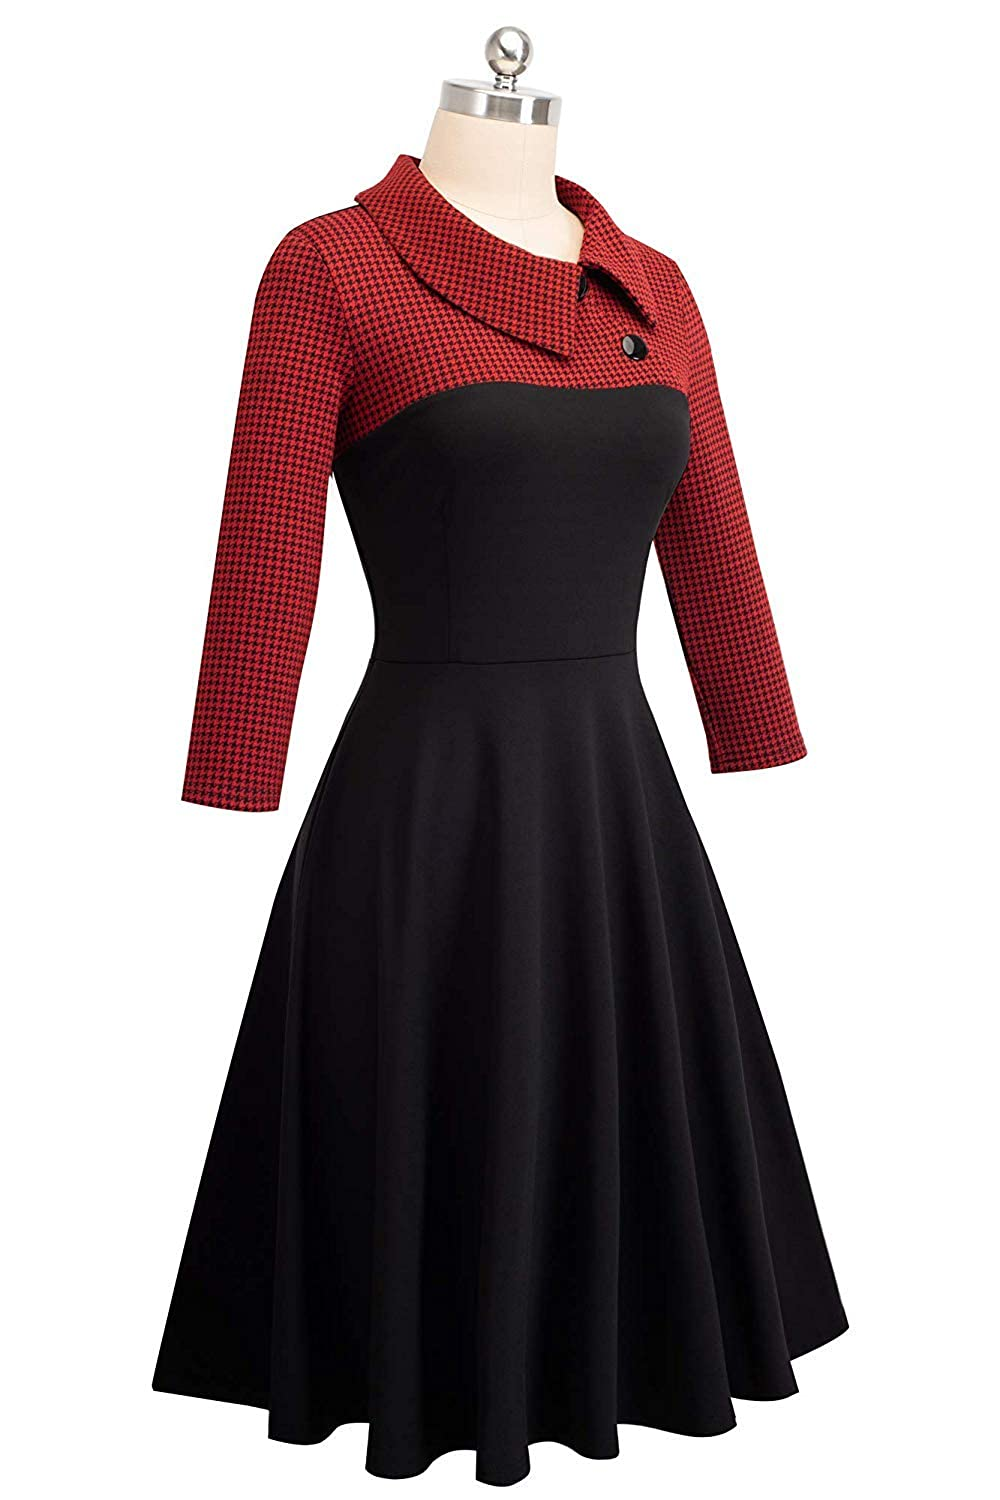 Damen Vintage Kleid Dress Colorblock Revers Houndstooth Patchwork Swing Elegant Business Kleid